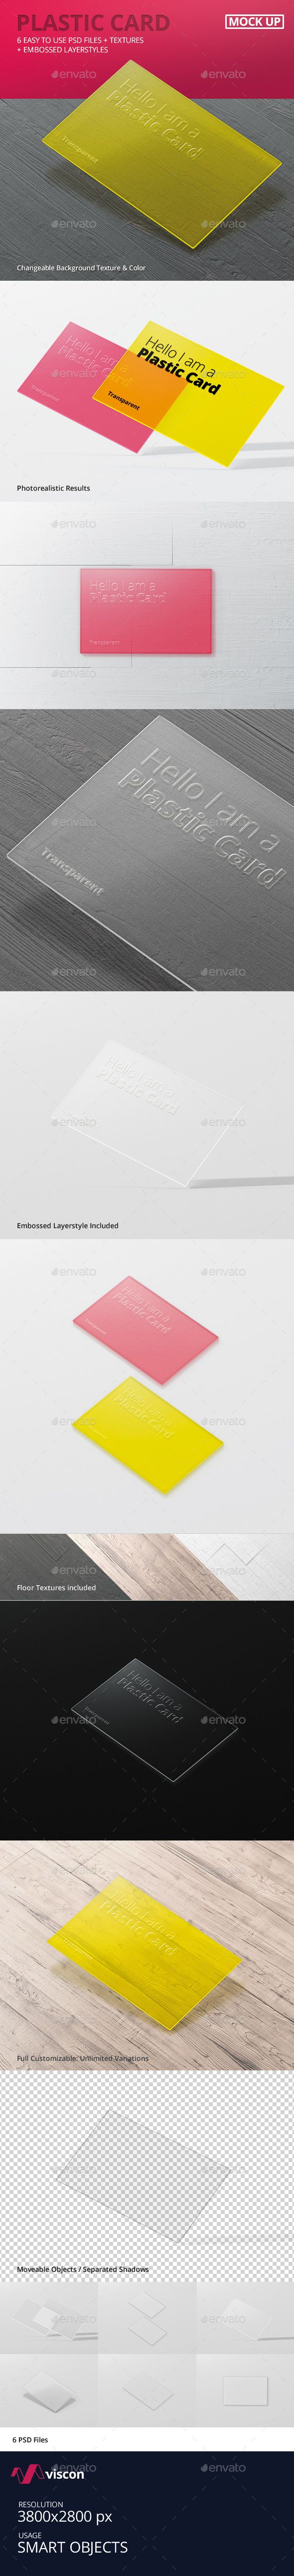 Best 25+ Plastic card ideas on Pinterest | Cool business cards ...